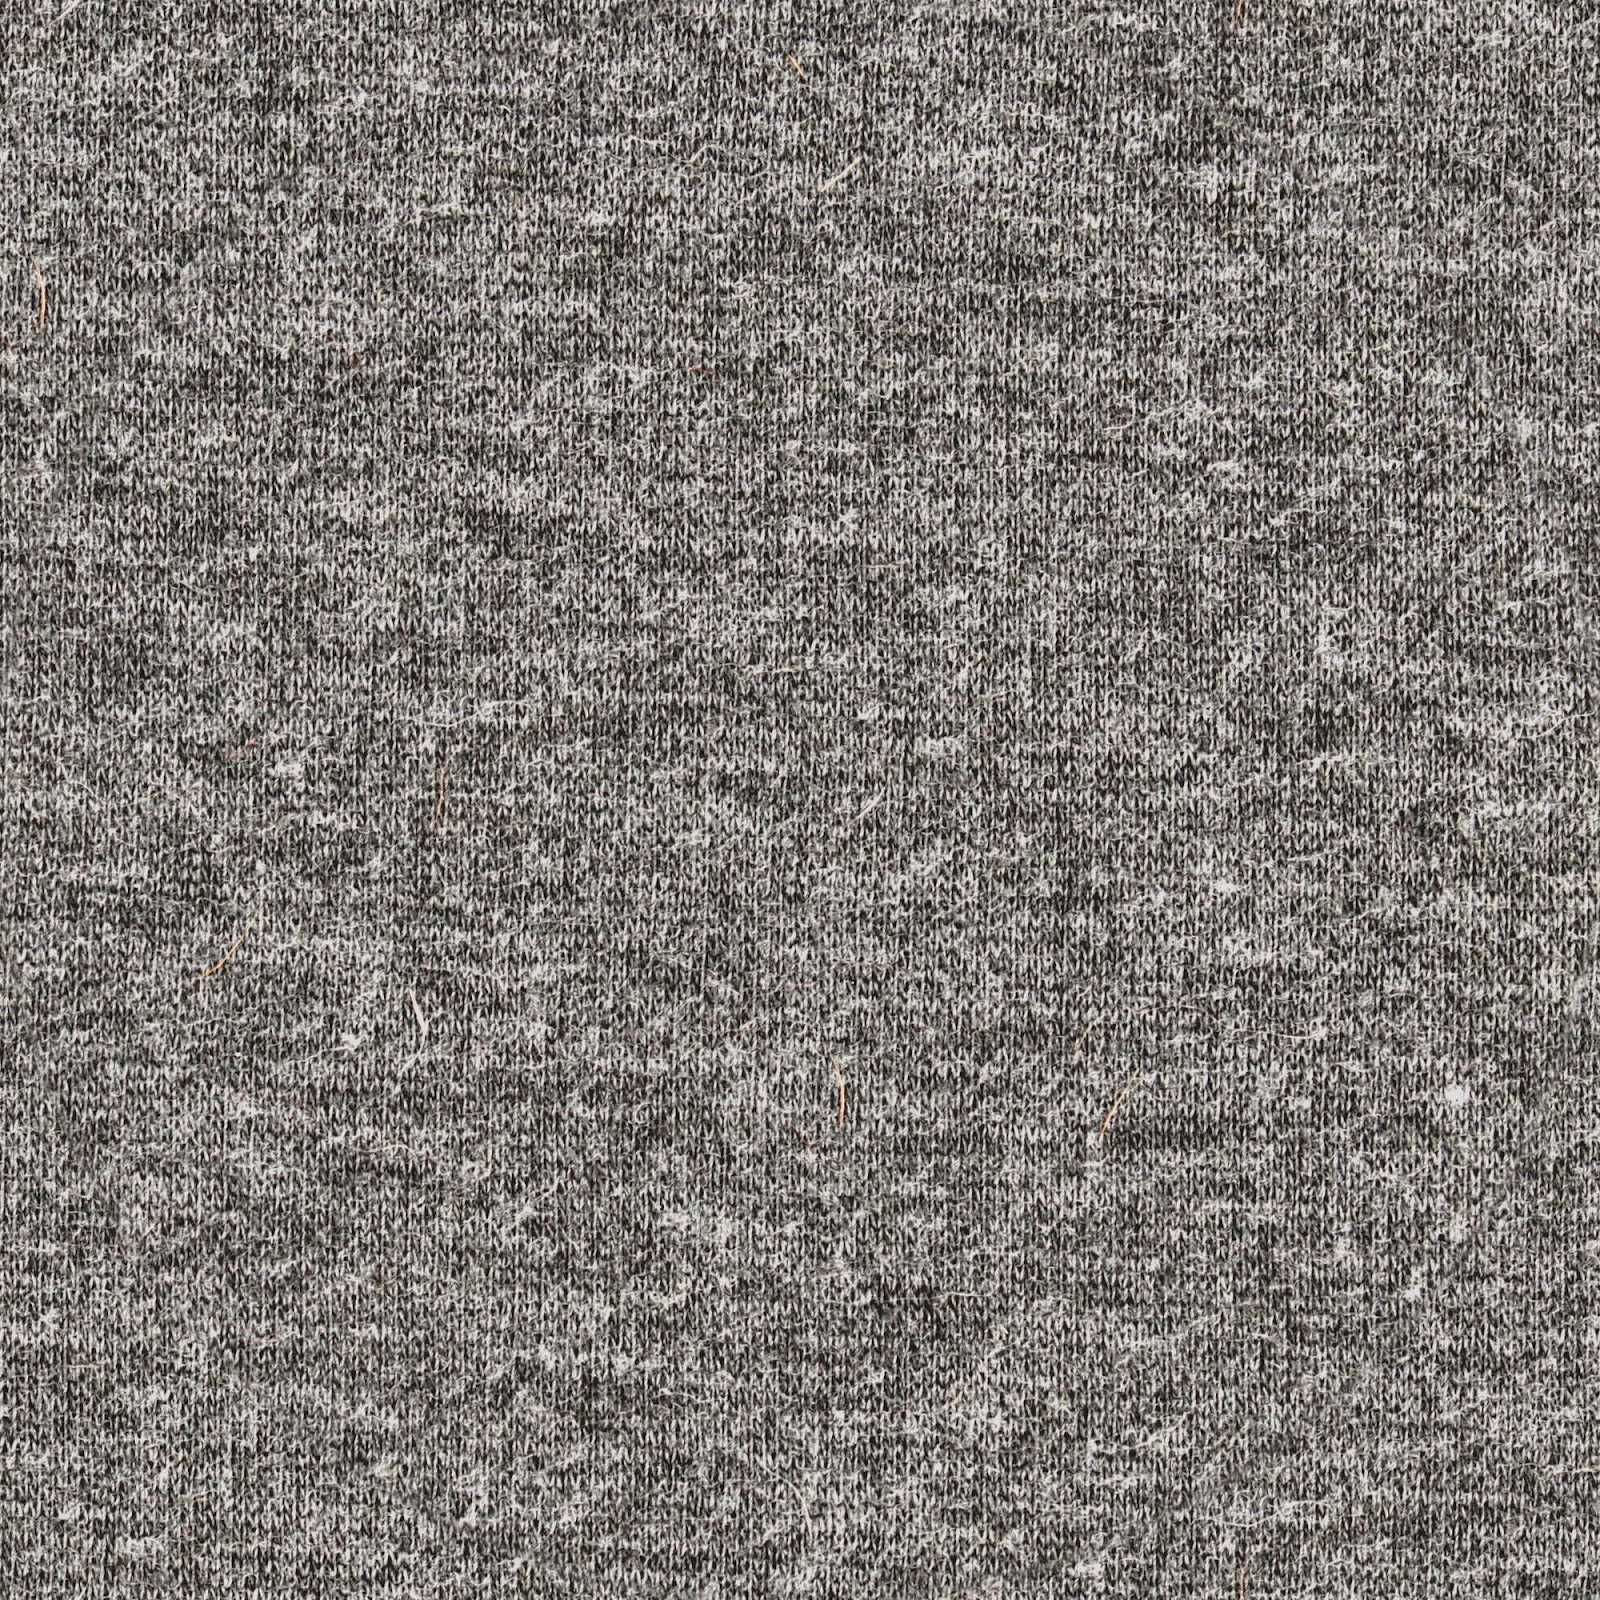 Brown Seamless Fabric Textures Seamless Fabric